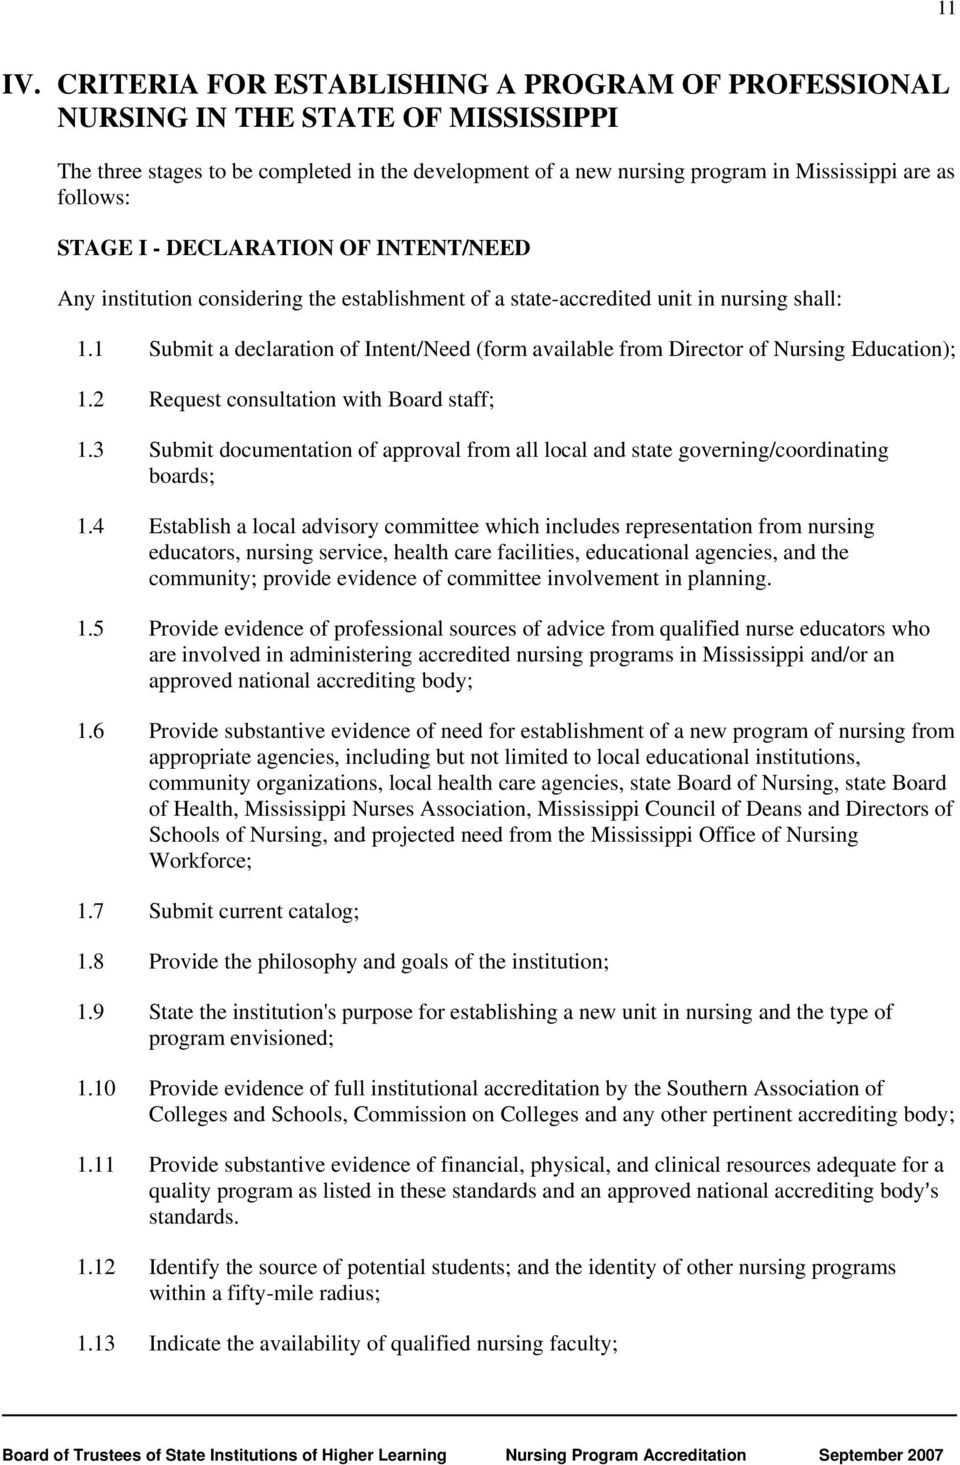 STAGE I - DECLARATION OF INTENT/NEED Any institution considering the establishment of a state-accredited unit in nursing shall: 1.